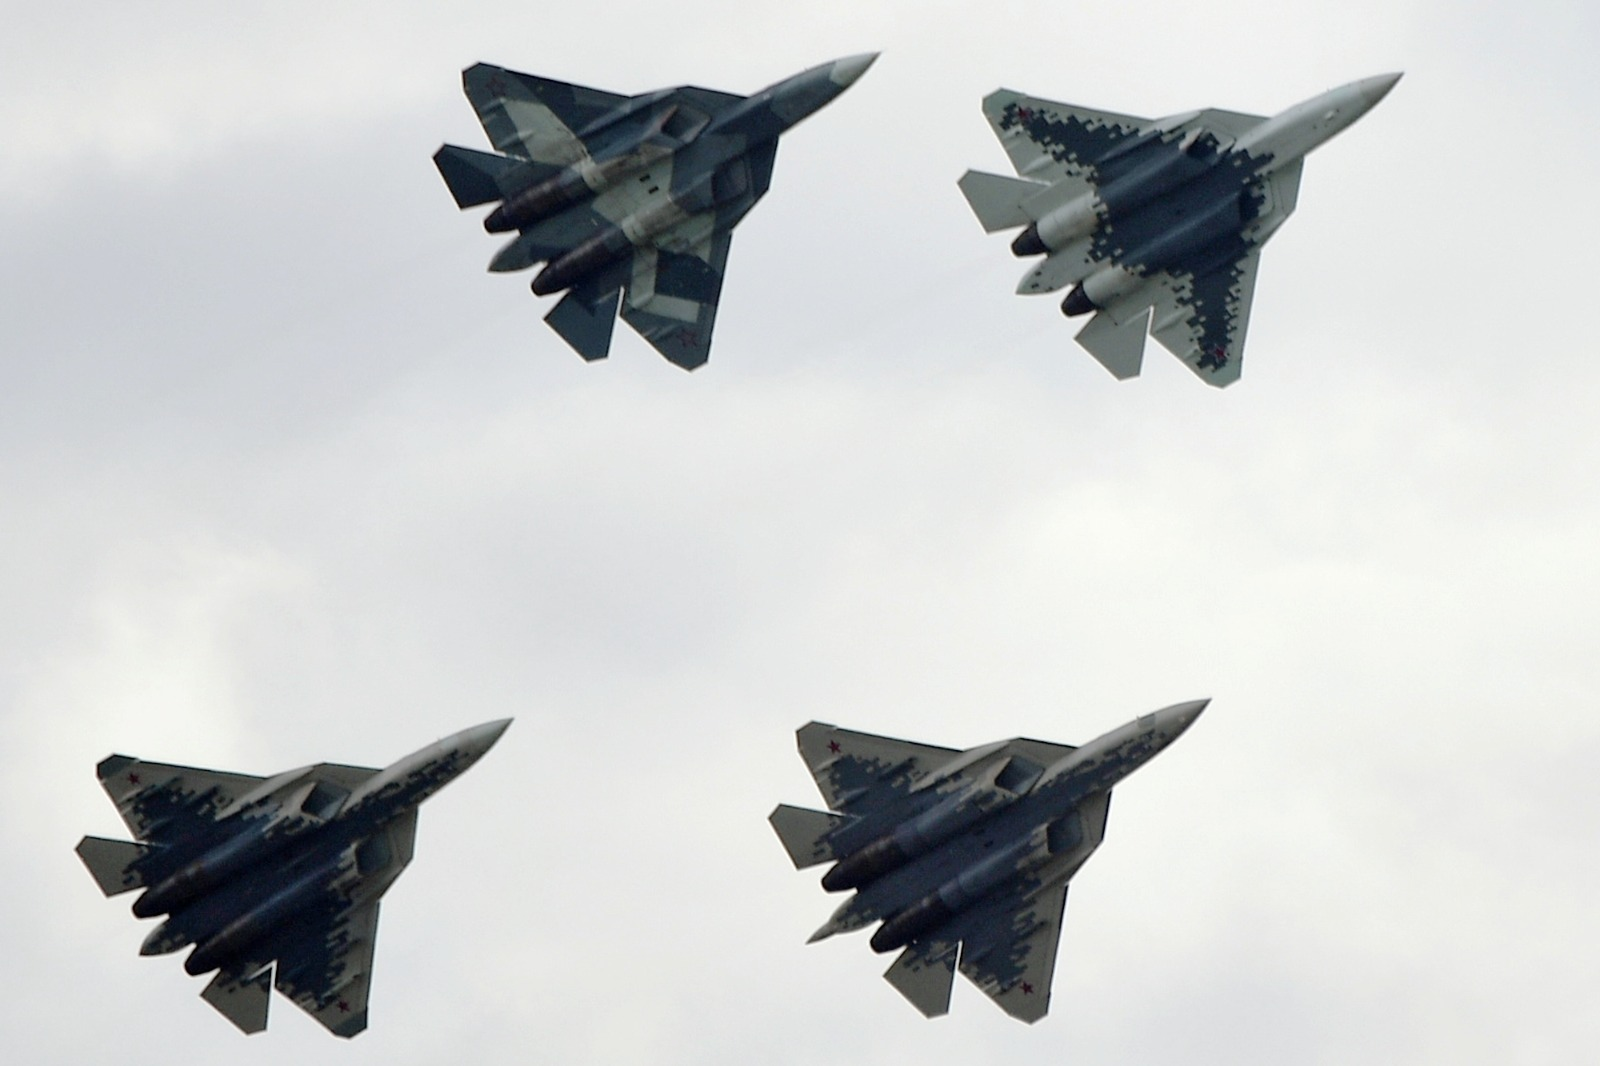 Russia Has A Really Old Way of Making the Su-57 More Stealth